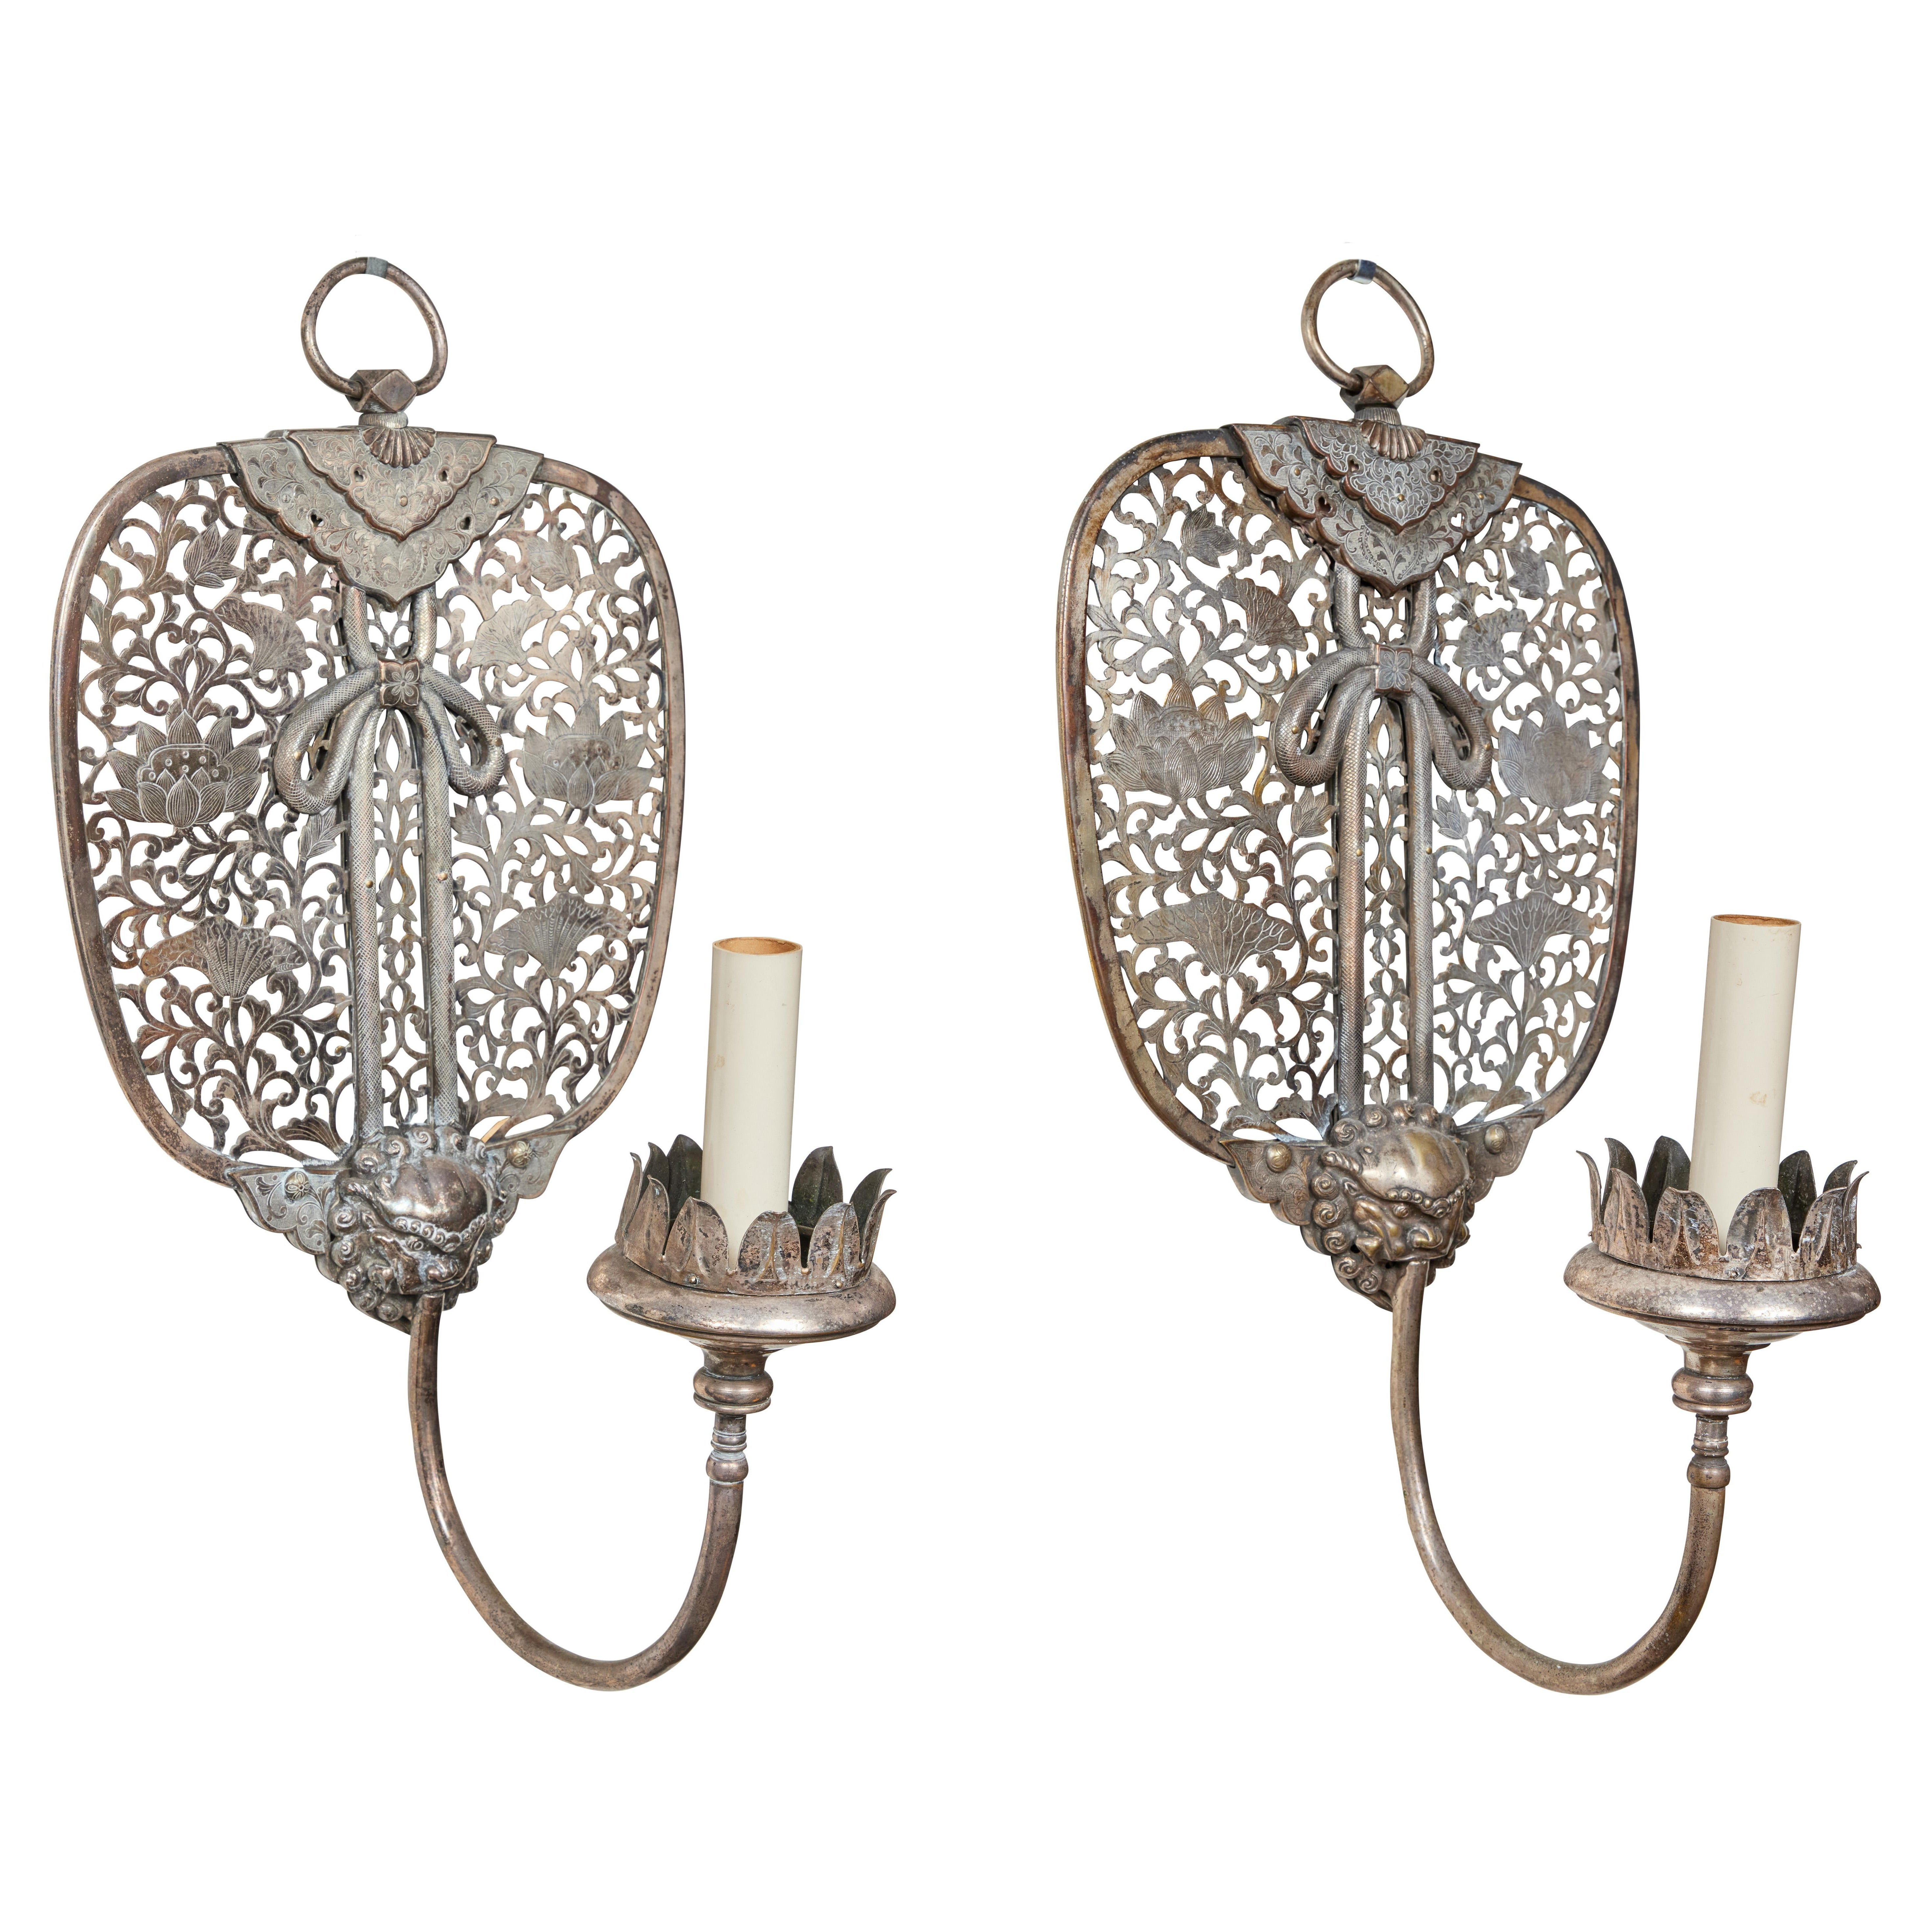 Antique, Silver Plated Chinoiserie Sconces